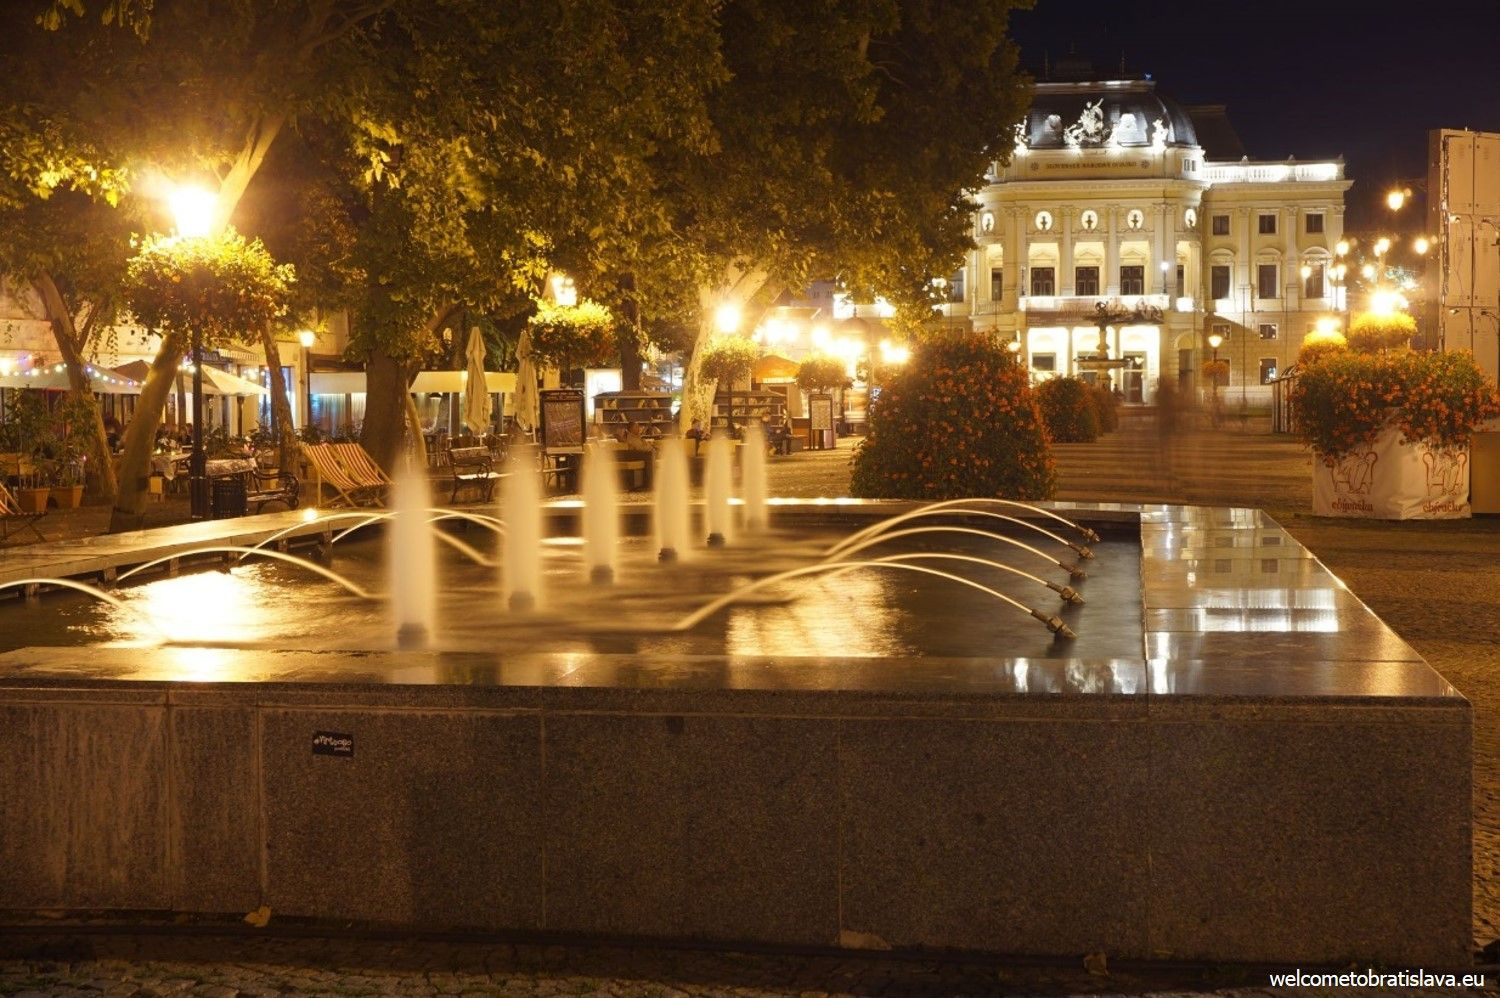 BRATISLAVA BY NIGHT FREE TOUR - WelcomeToBratislava | WelcomeToBratislava - The Slovak National Theater